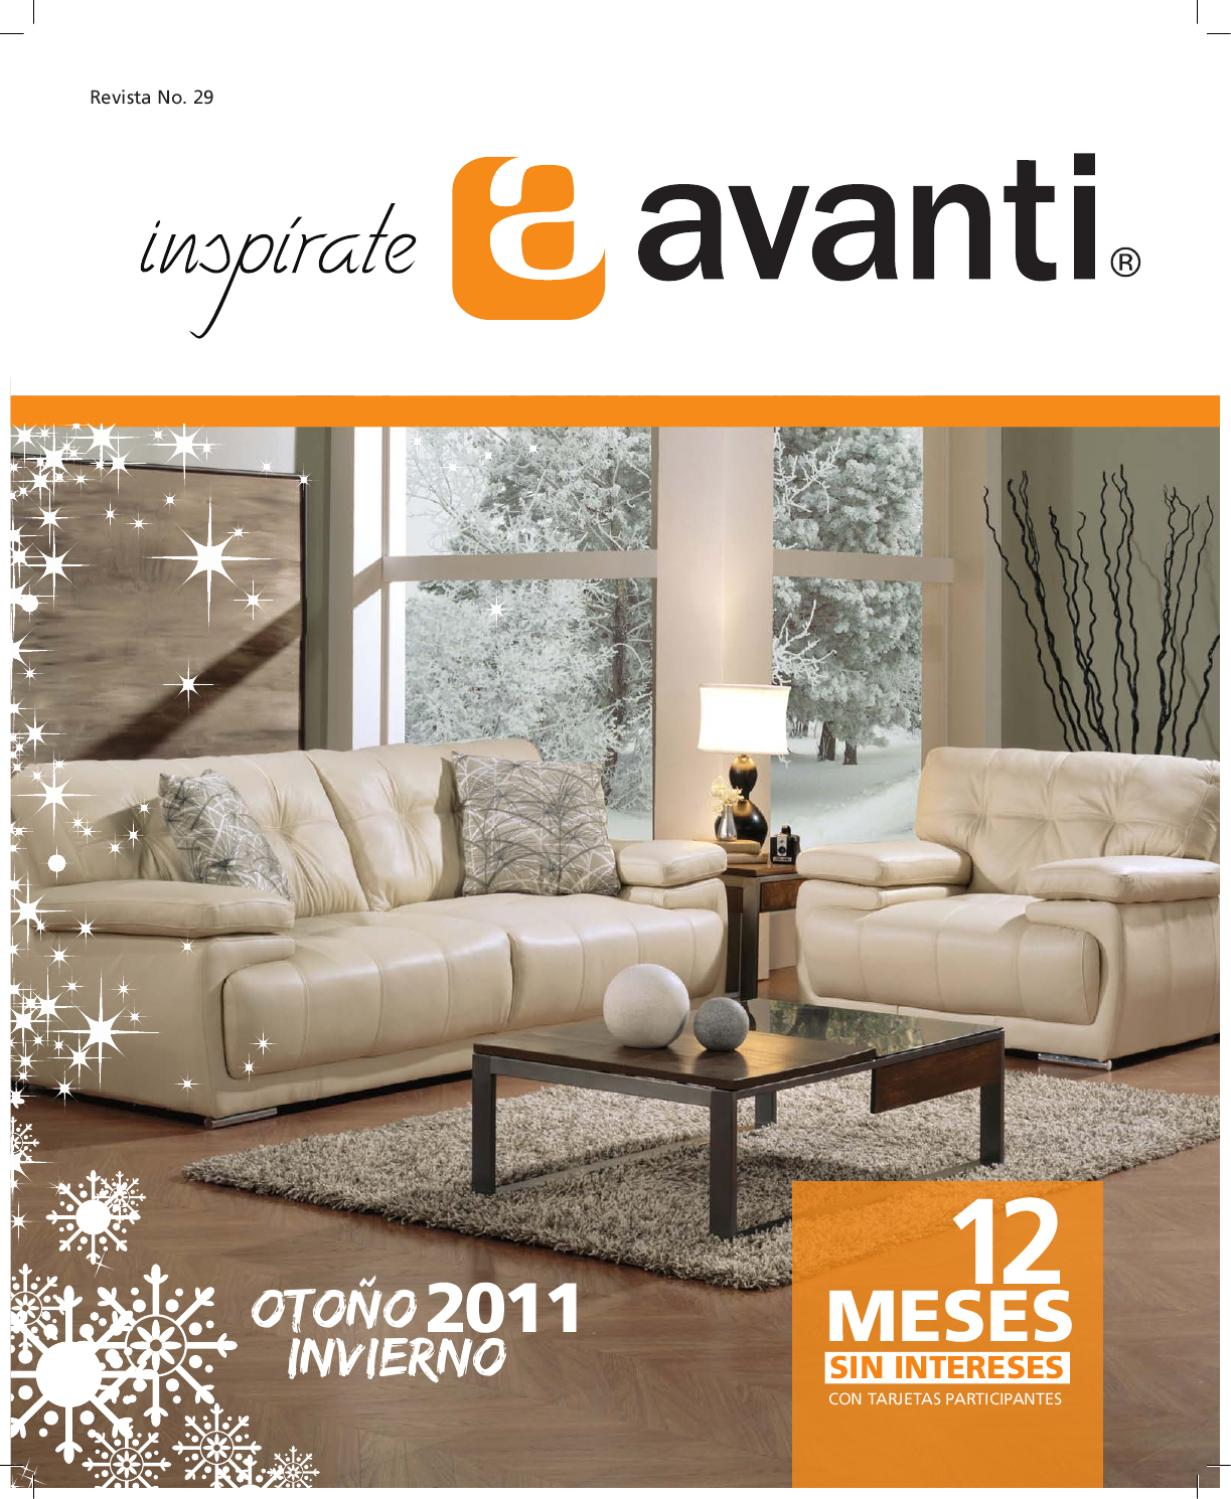 Muebler a avanti colecci n cat logo 2011 by rodolfo for Muebles sanchez catalogo